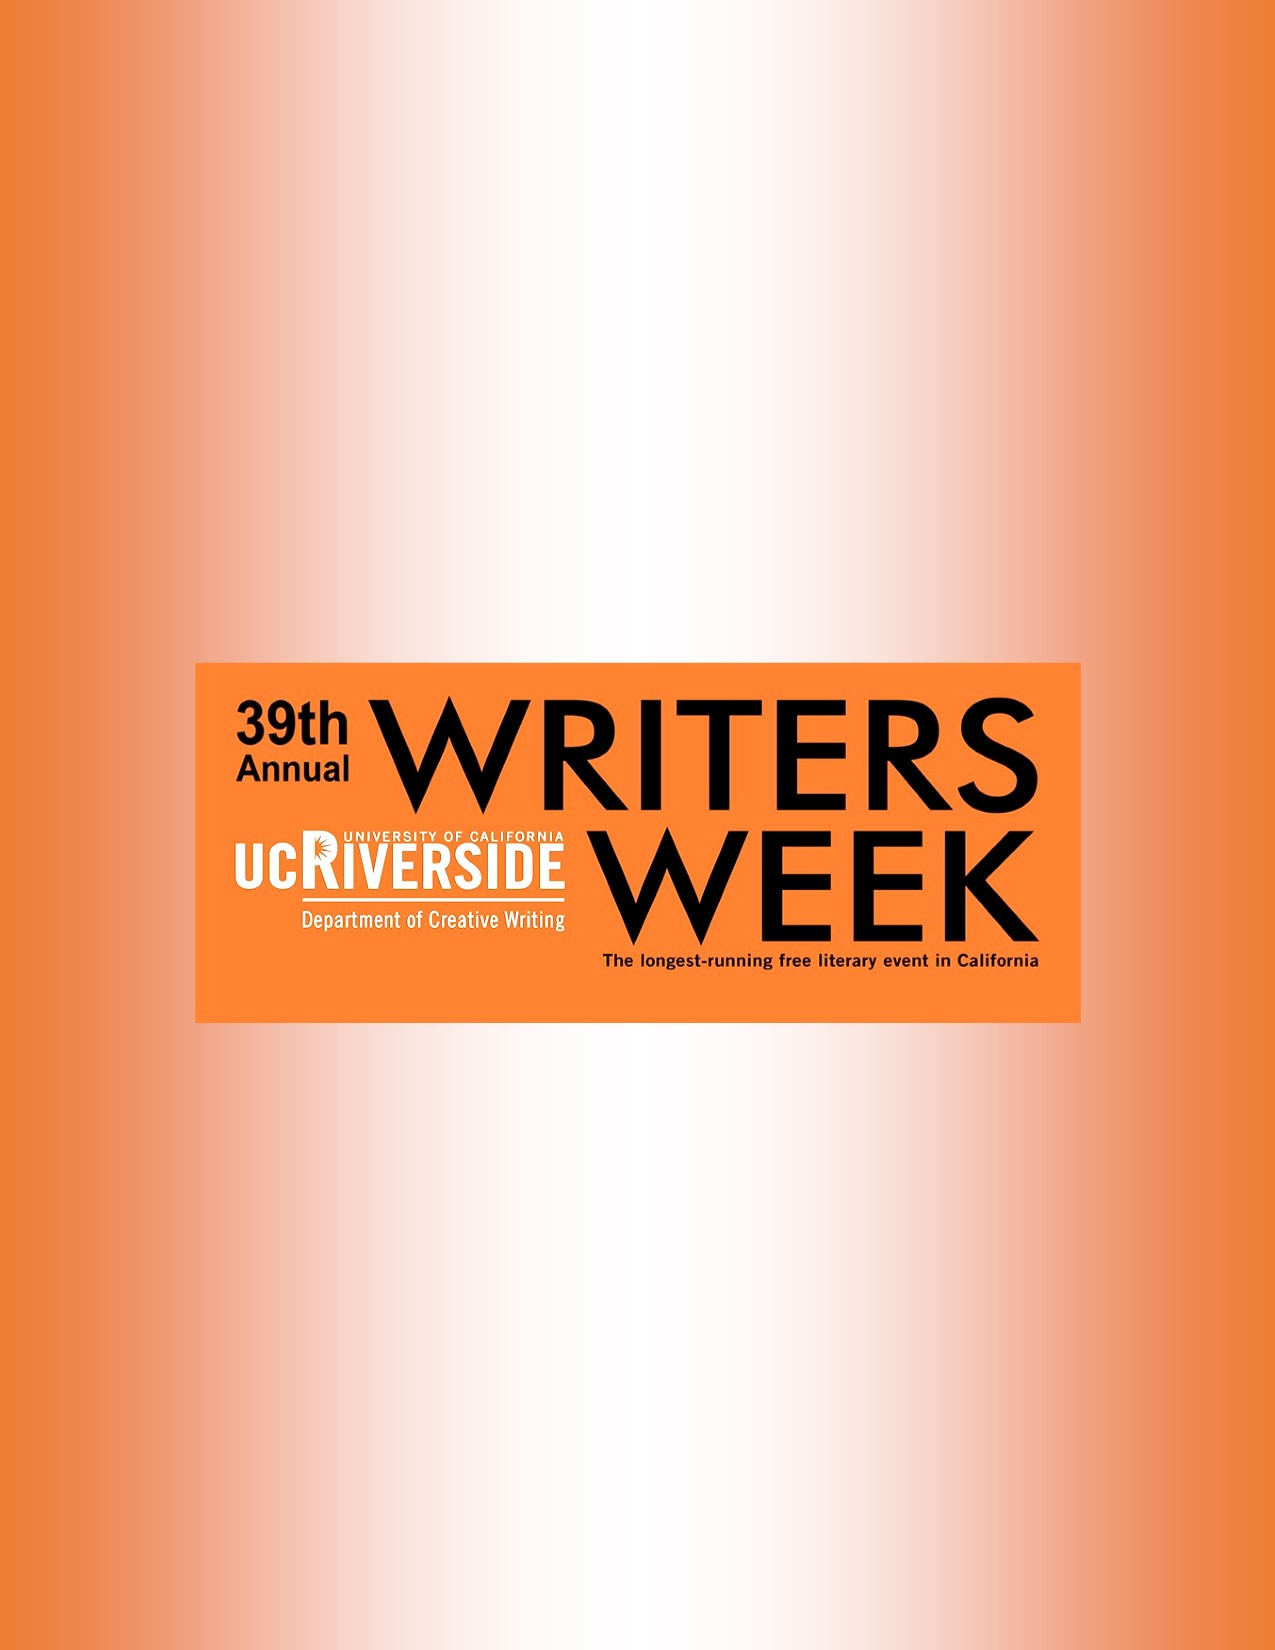 The 39th Annual Writers Week